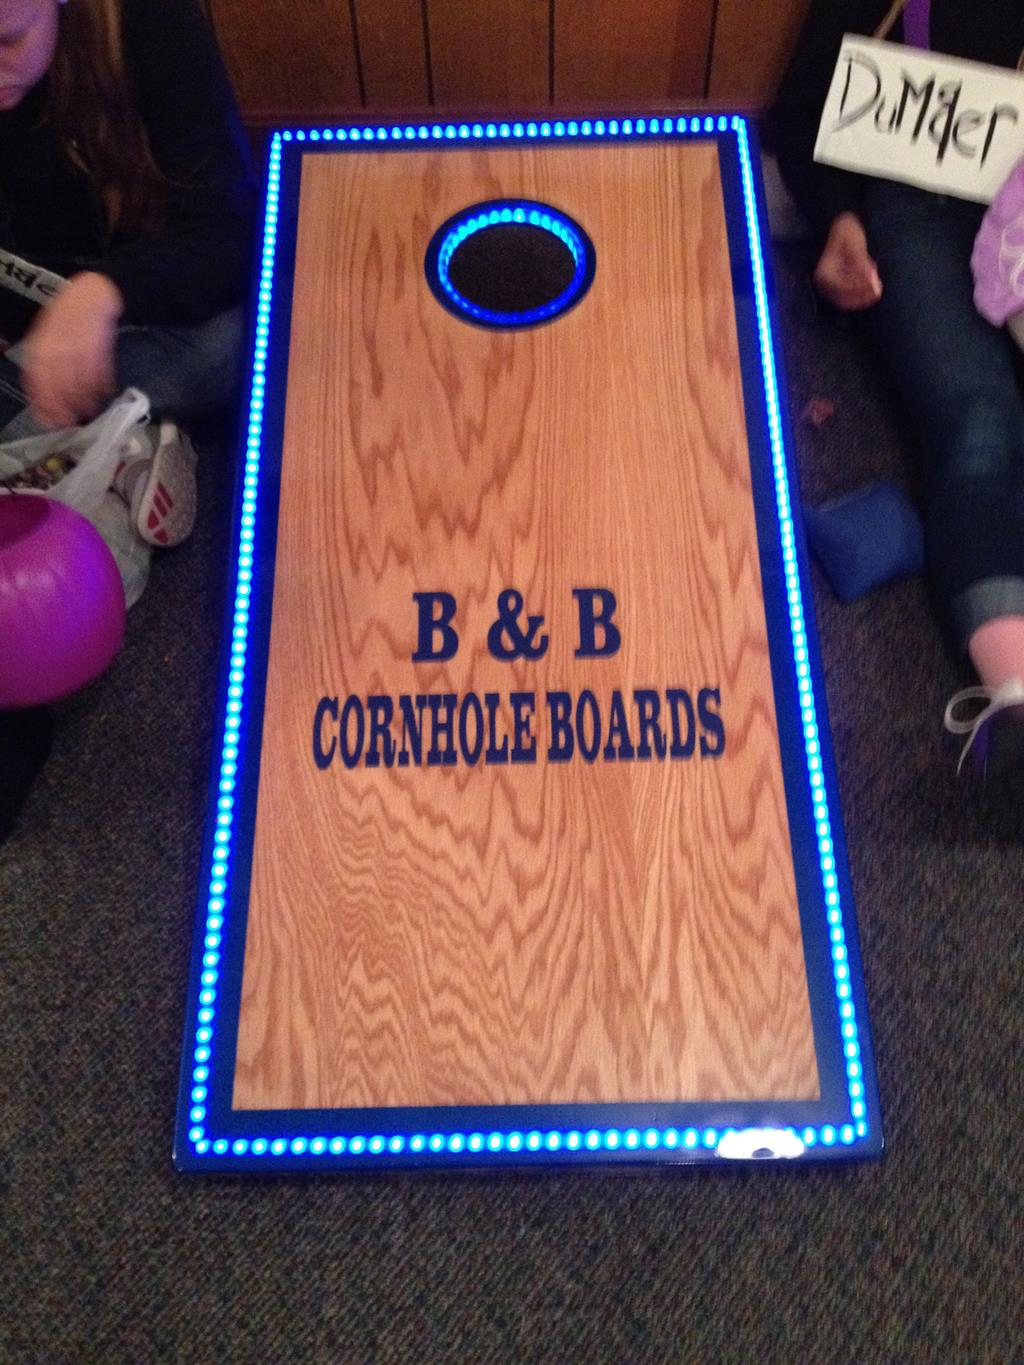 LED light up Boards